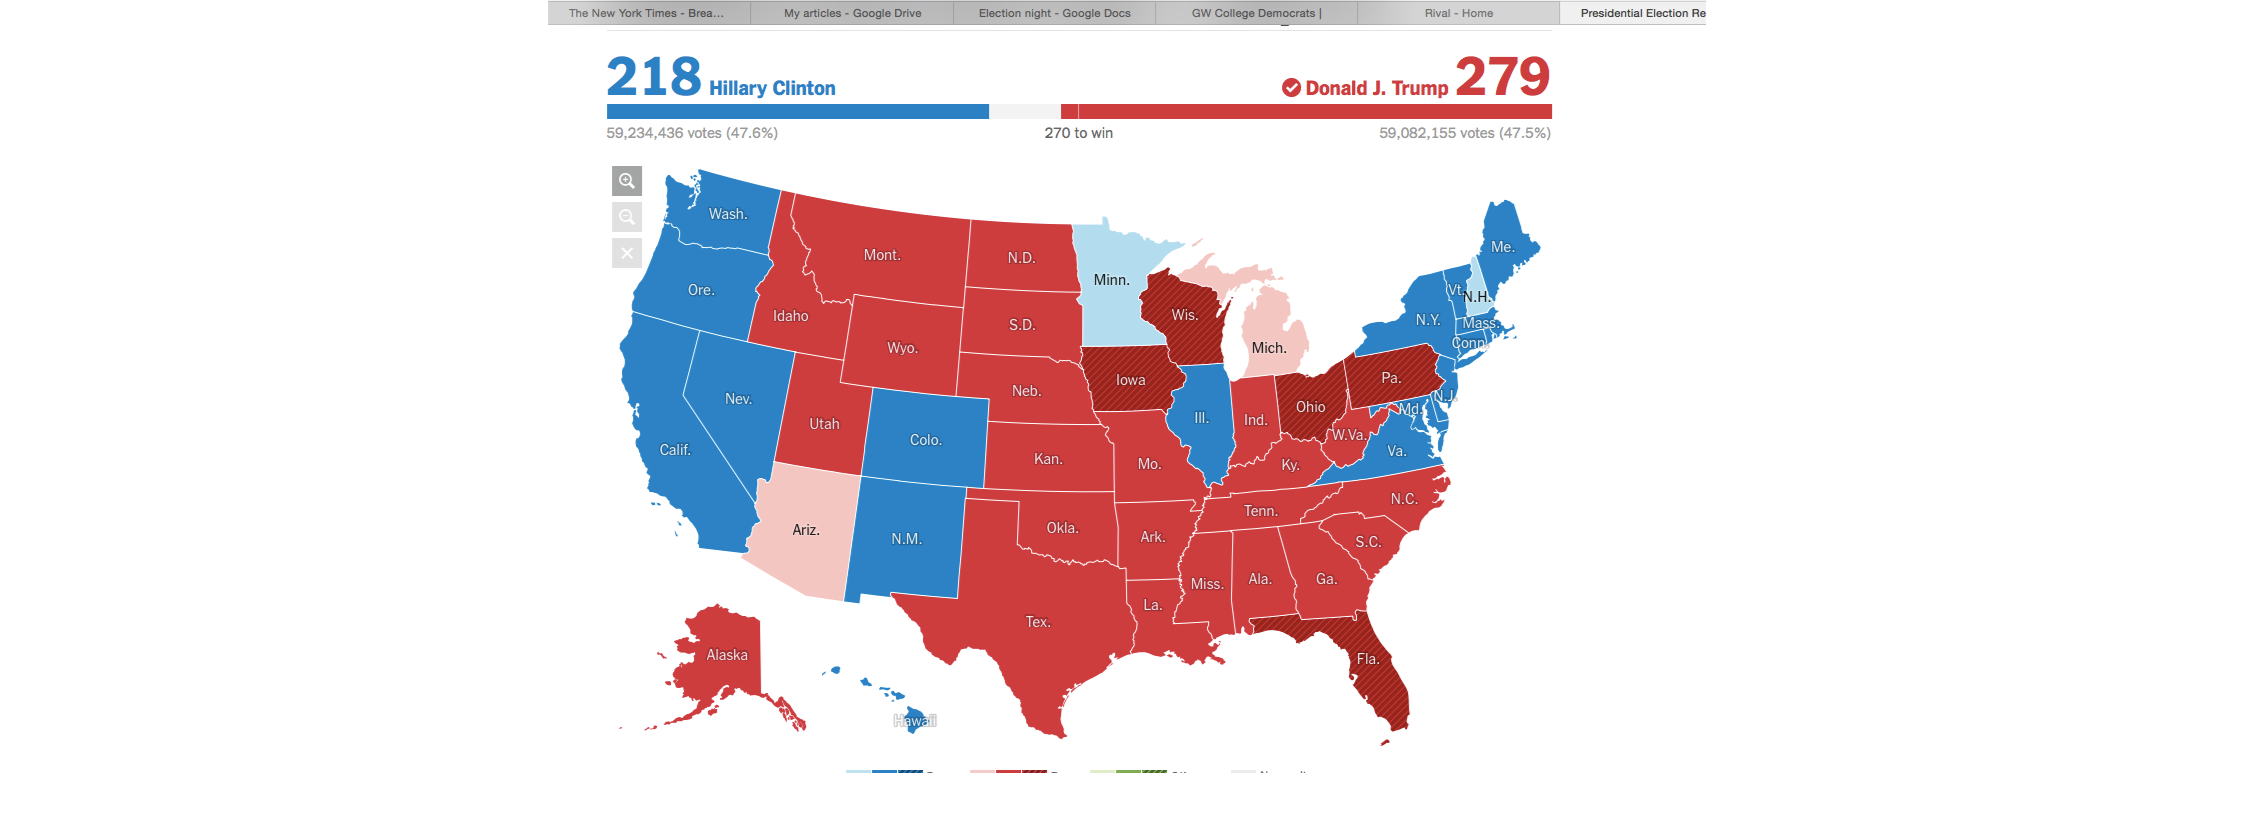 Final results from the NY Times.